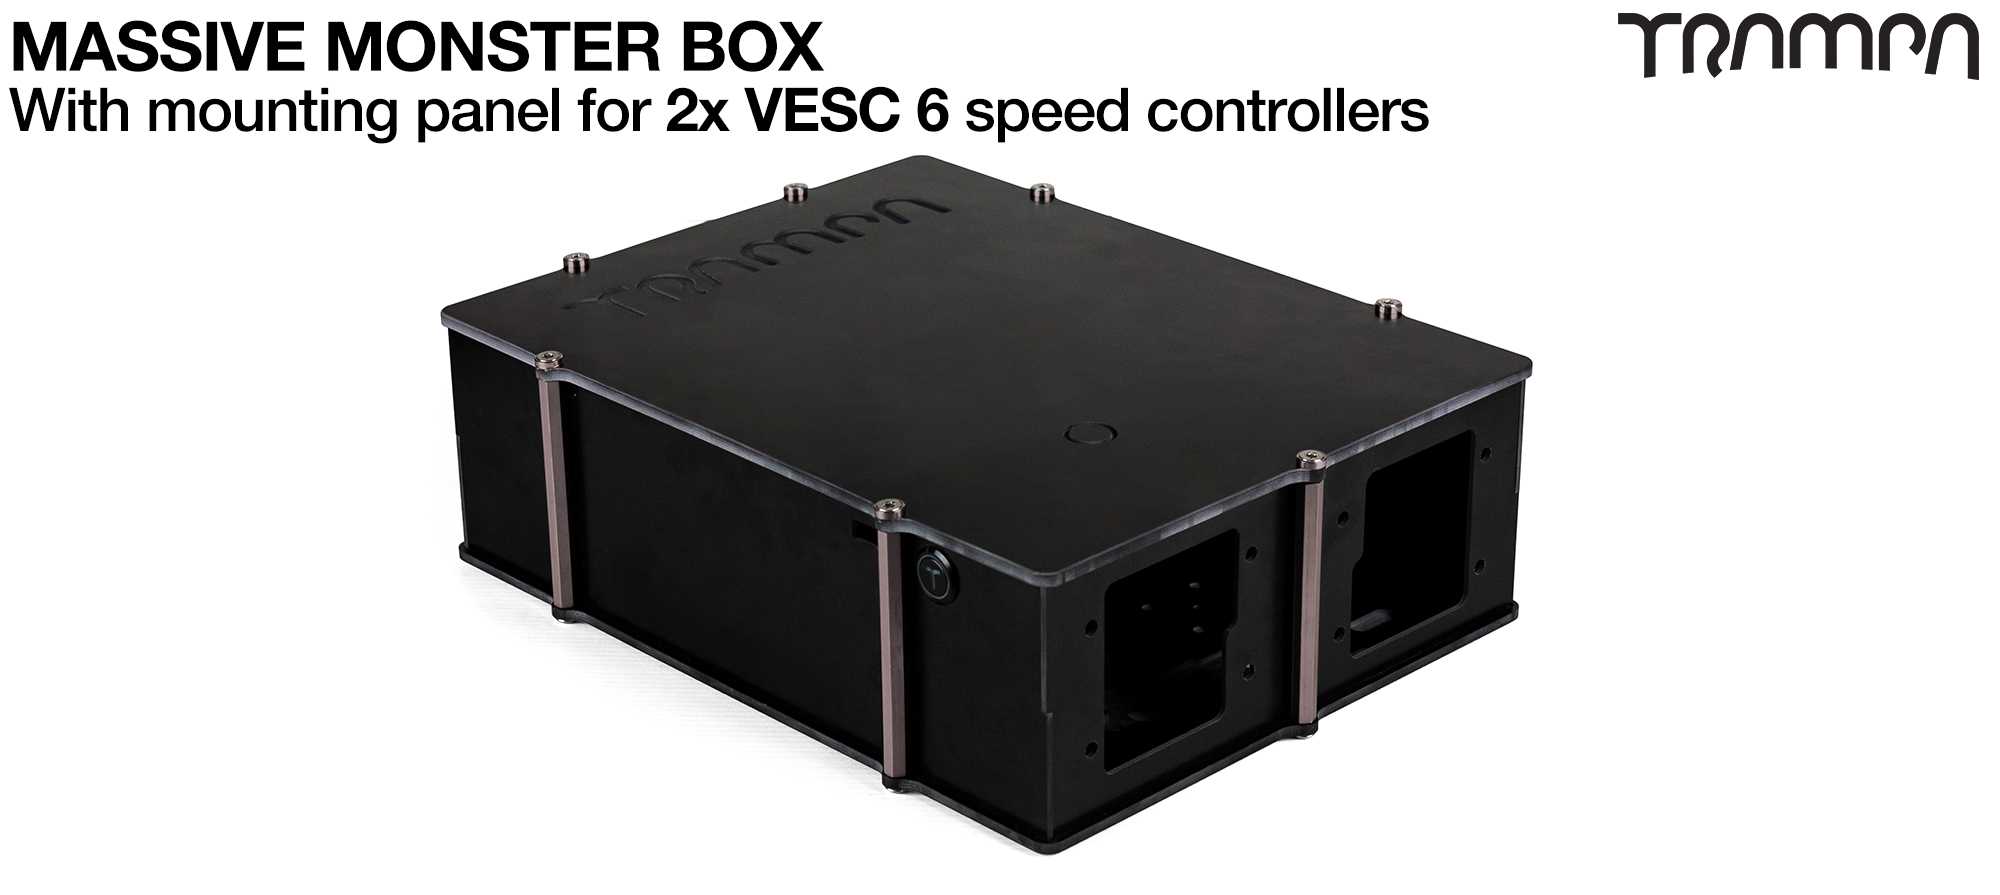 21700 2WD MASSIVE MONSTER Box with 2x VESC 6 Mounting Panel